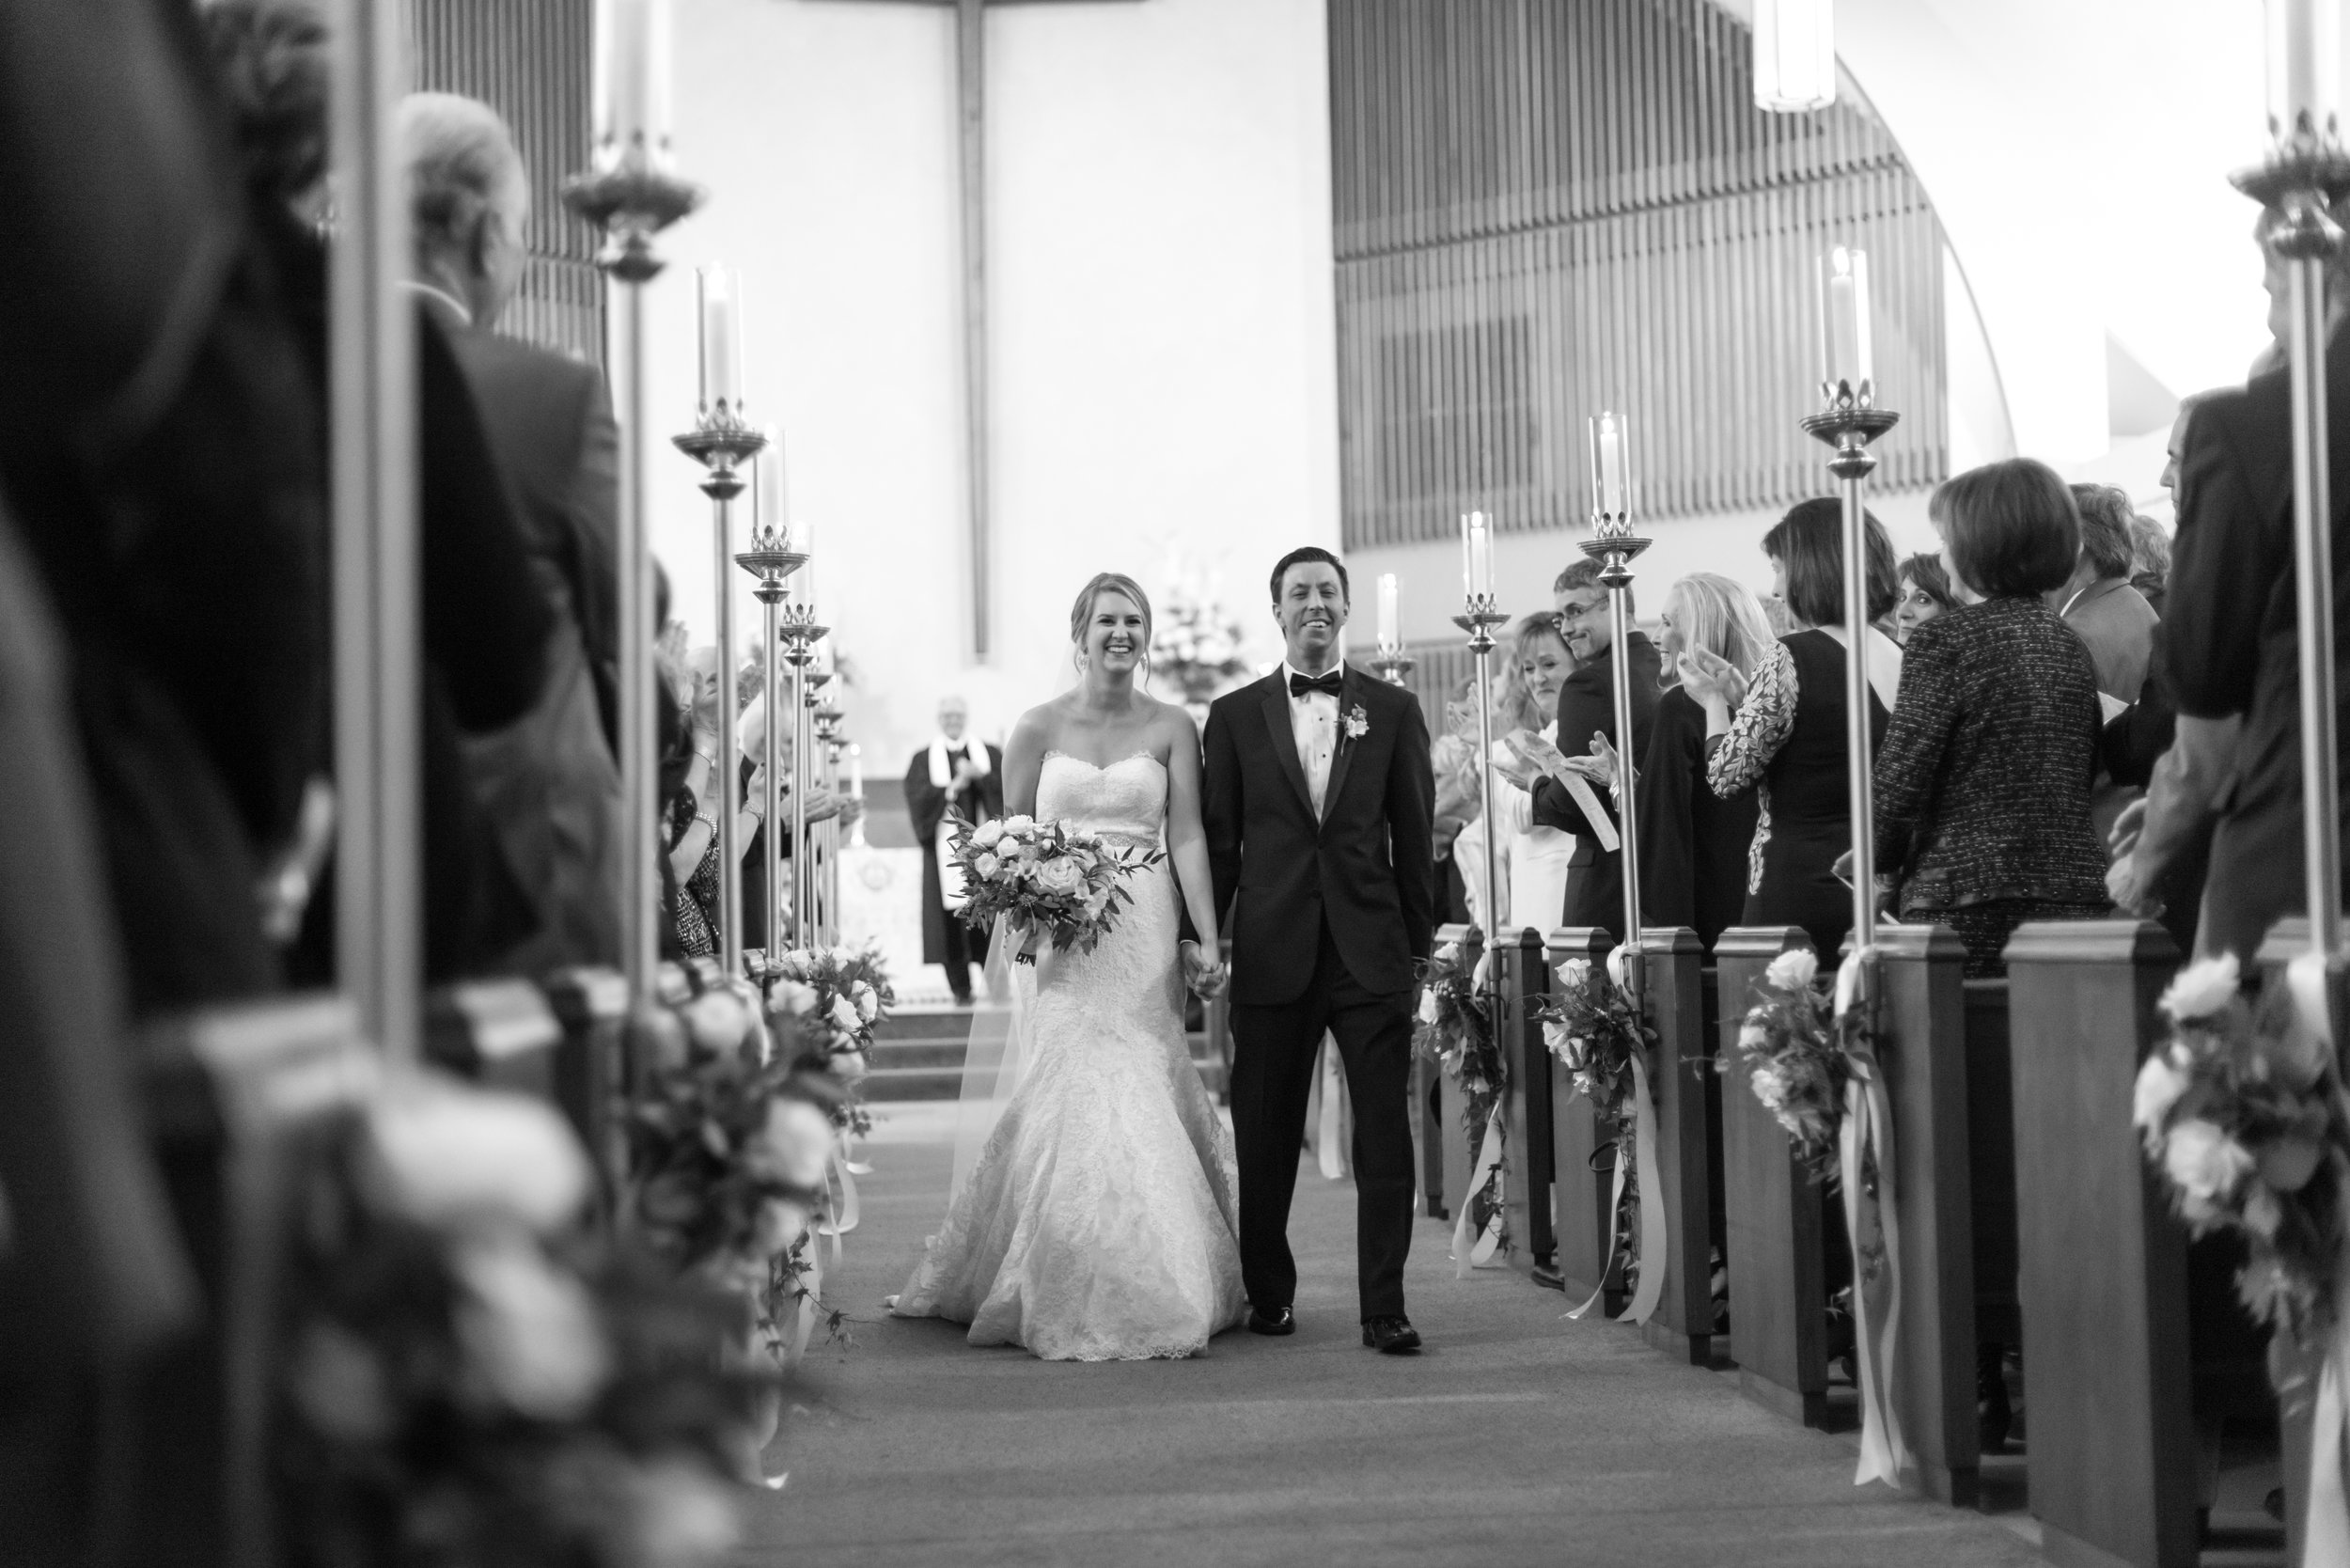 Southern Fete, Southern Wedding, Asbury Methodist Church, Lowry's, The Gardenaire, Bride and Groom Walking down aisle